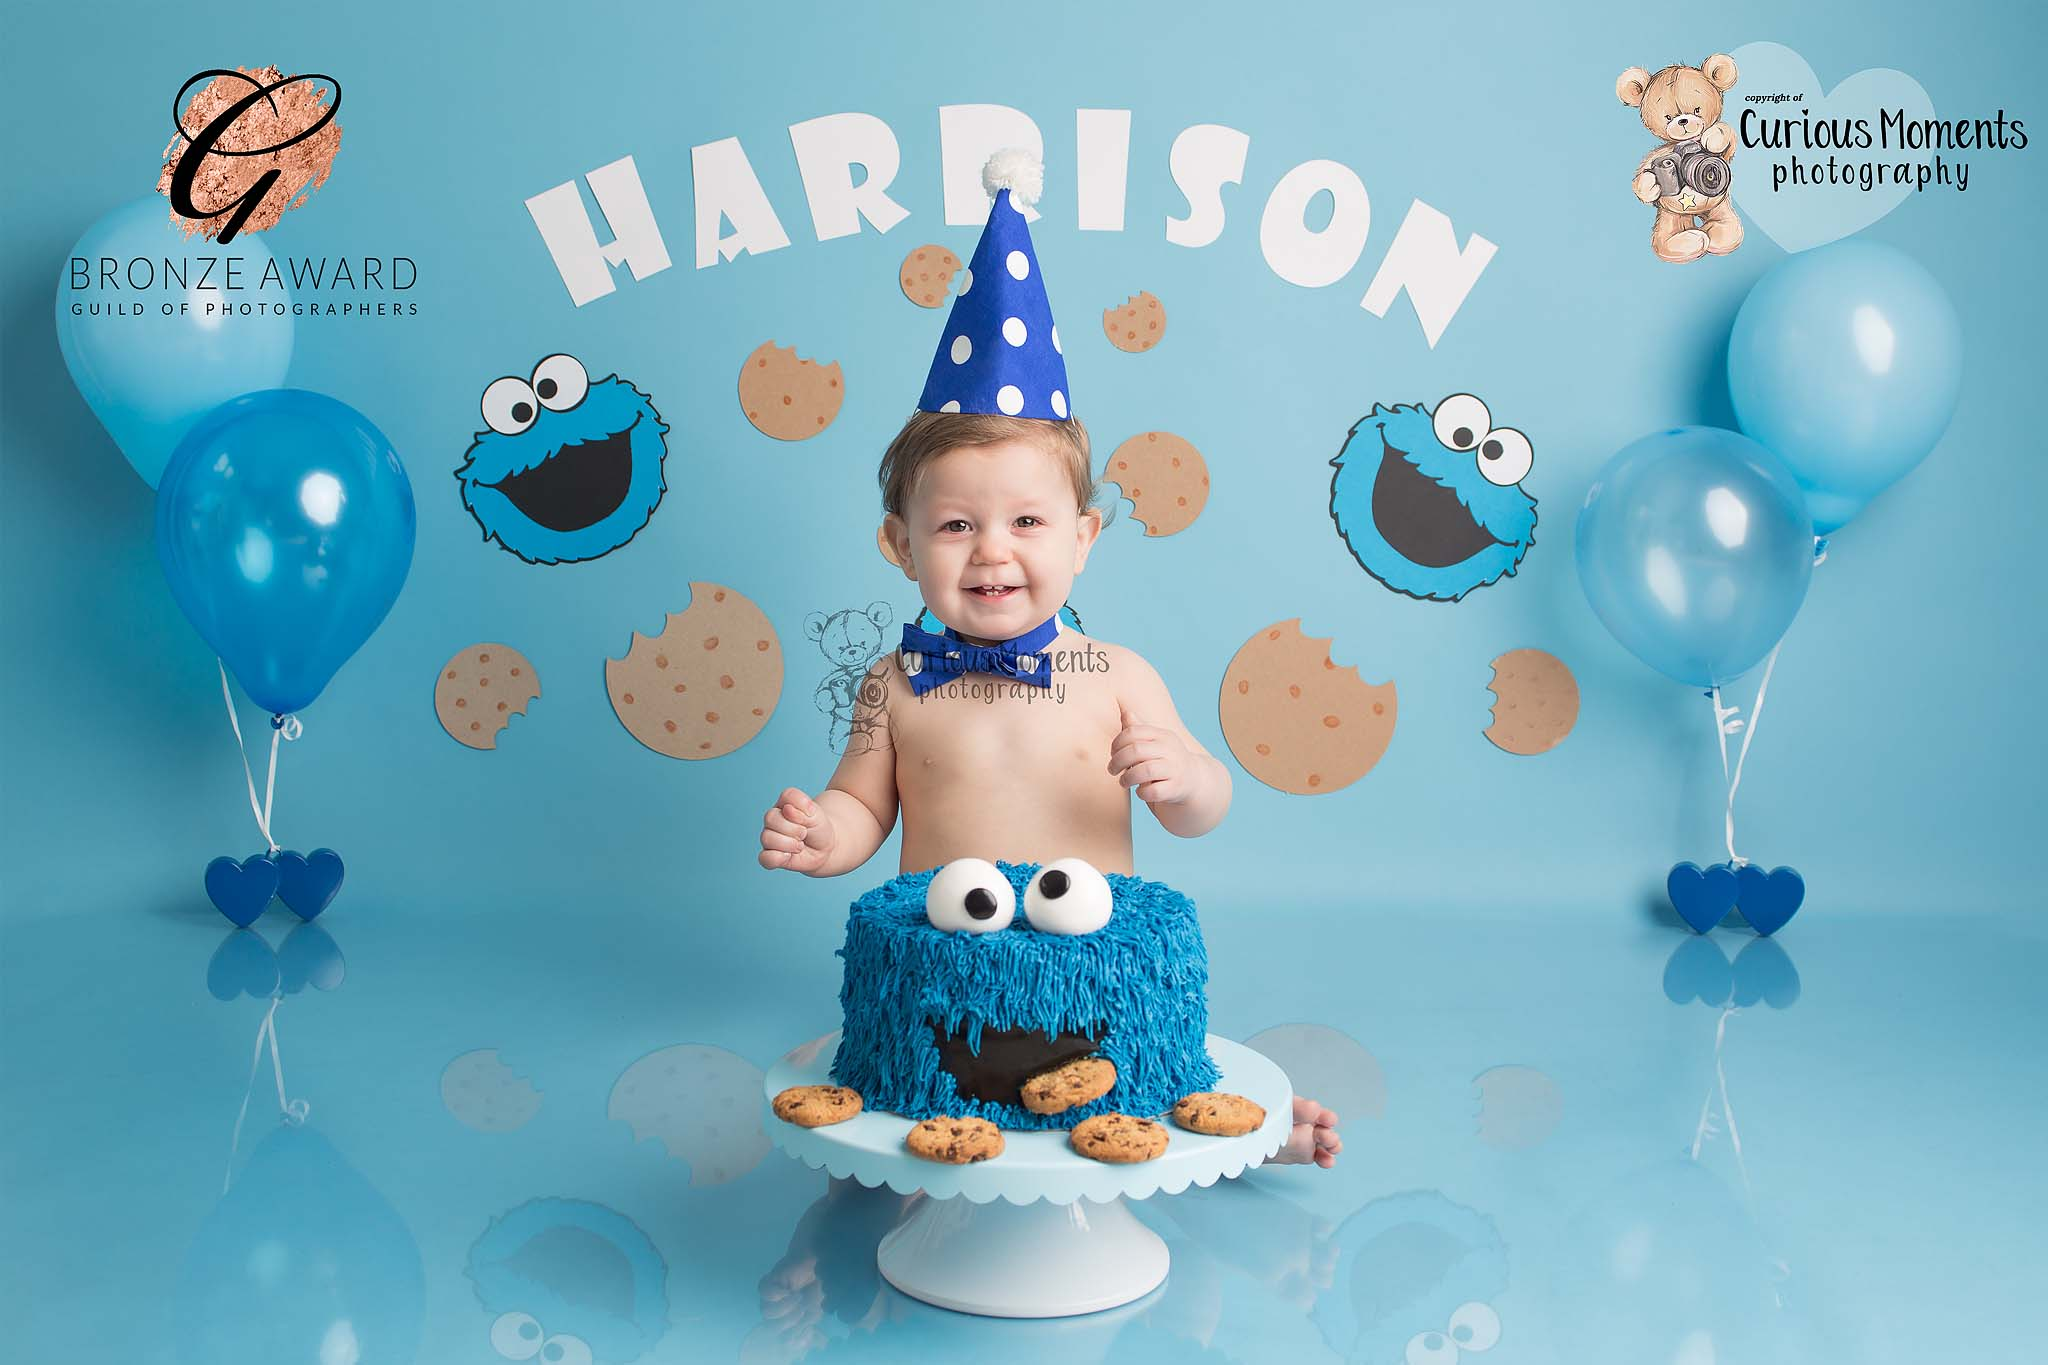 Birthady boy enjoying himself with a cookie monster inspired cake smash with carmarthen photographer